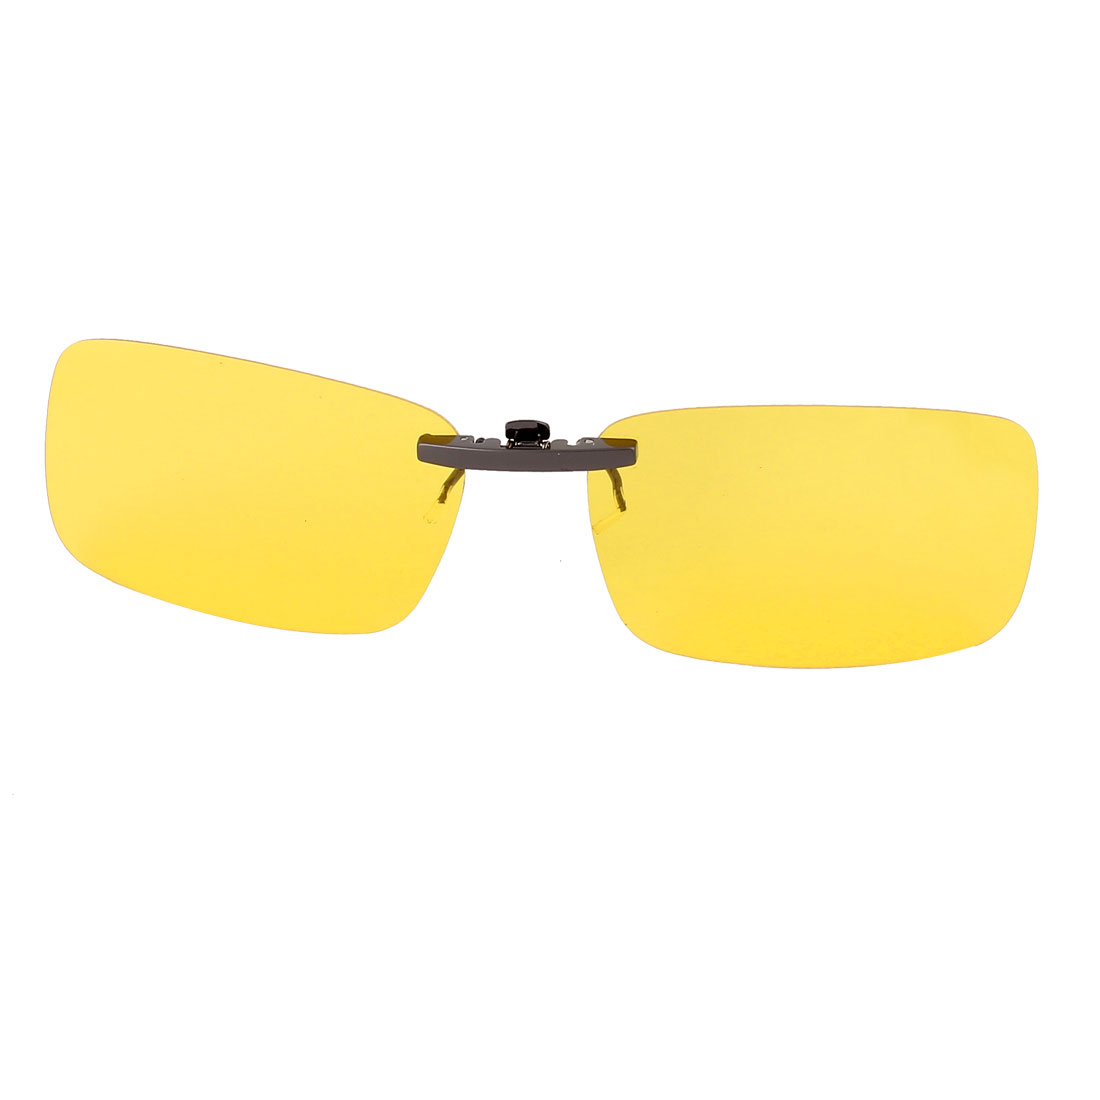 Unisex Hiking Travel Yellow Rectangle Lens Rimless Clip On Polarized Sunglasses Glasses Eyewear Protector